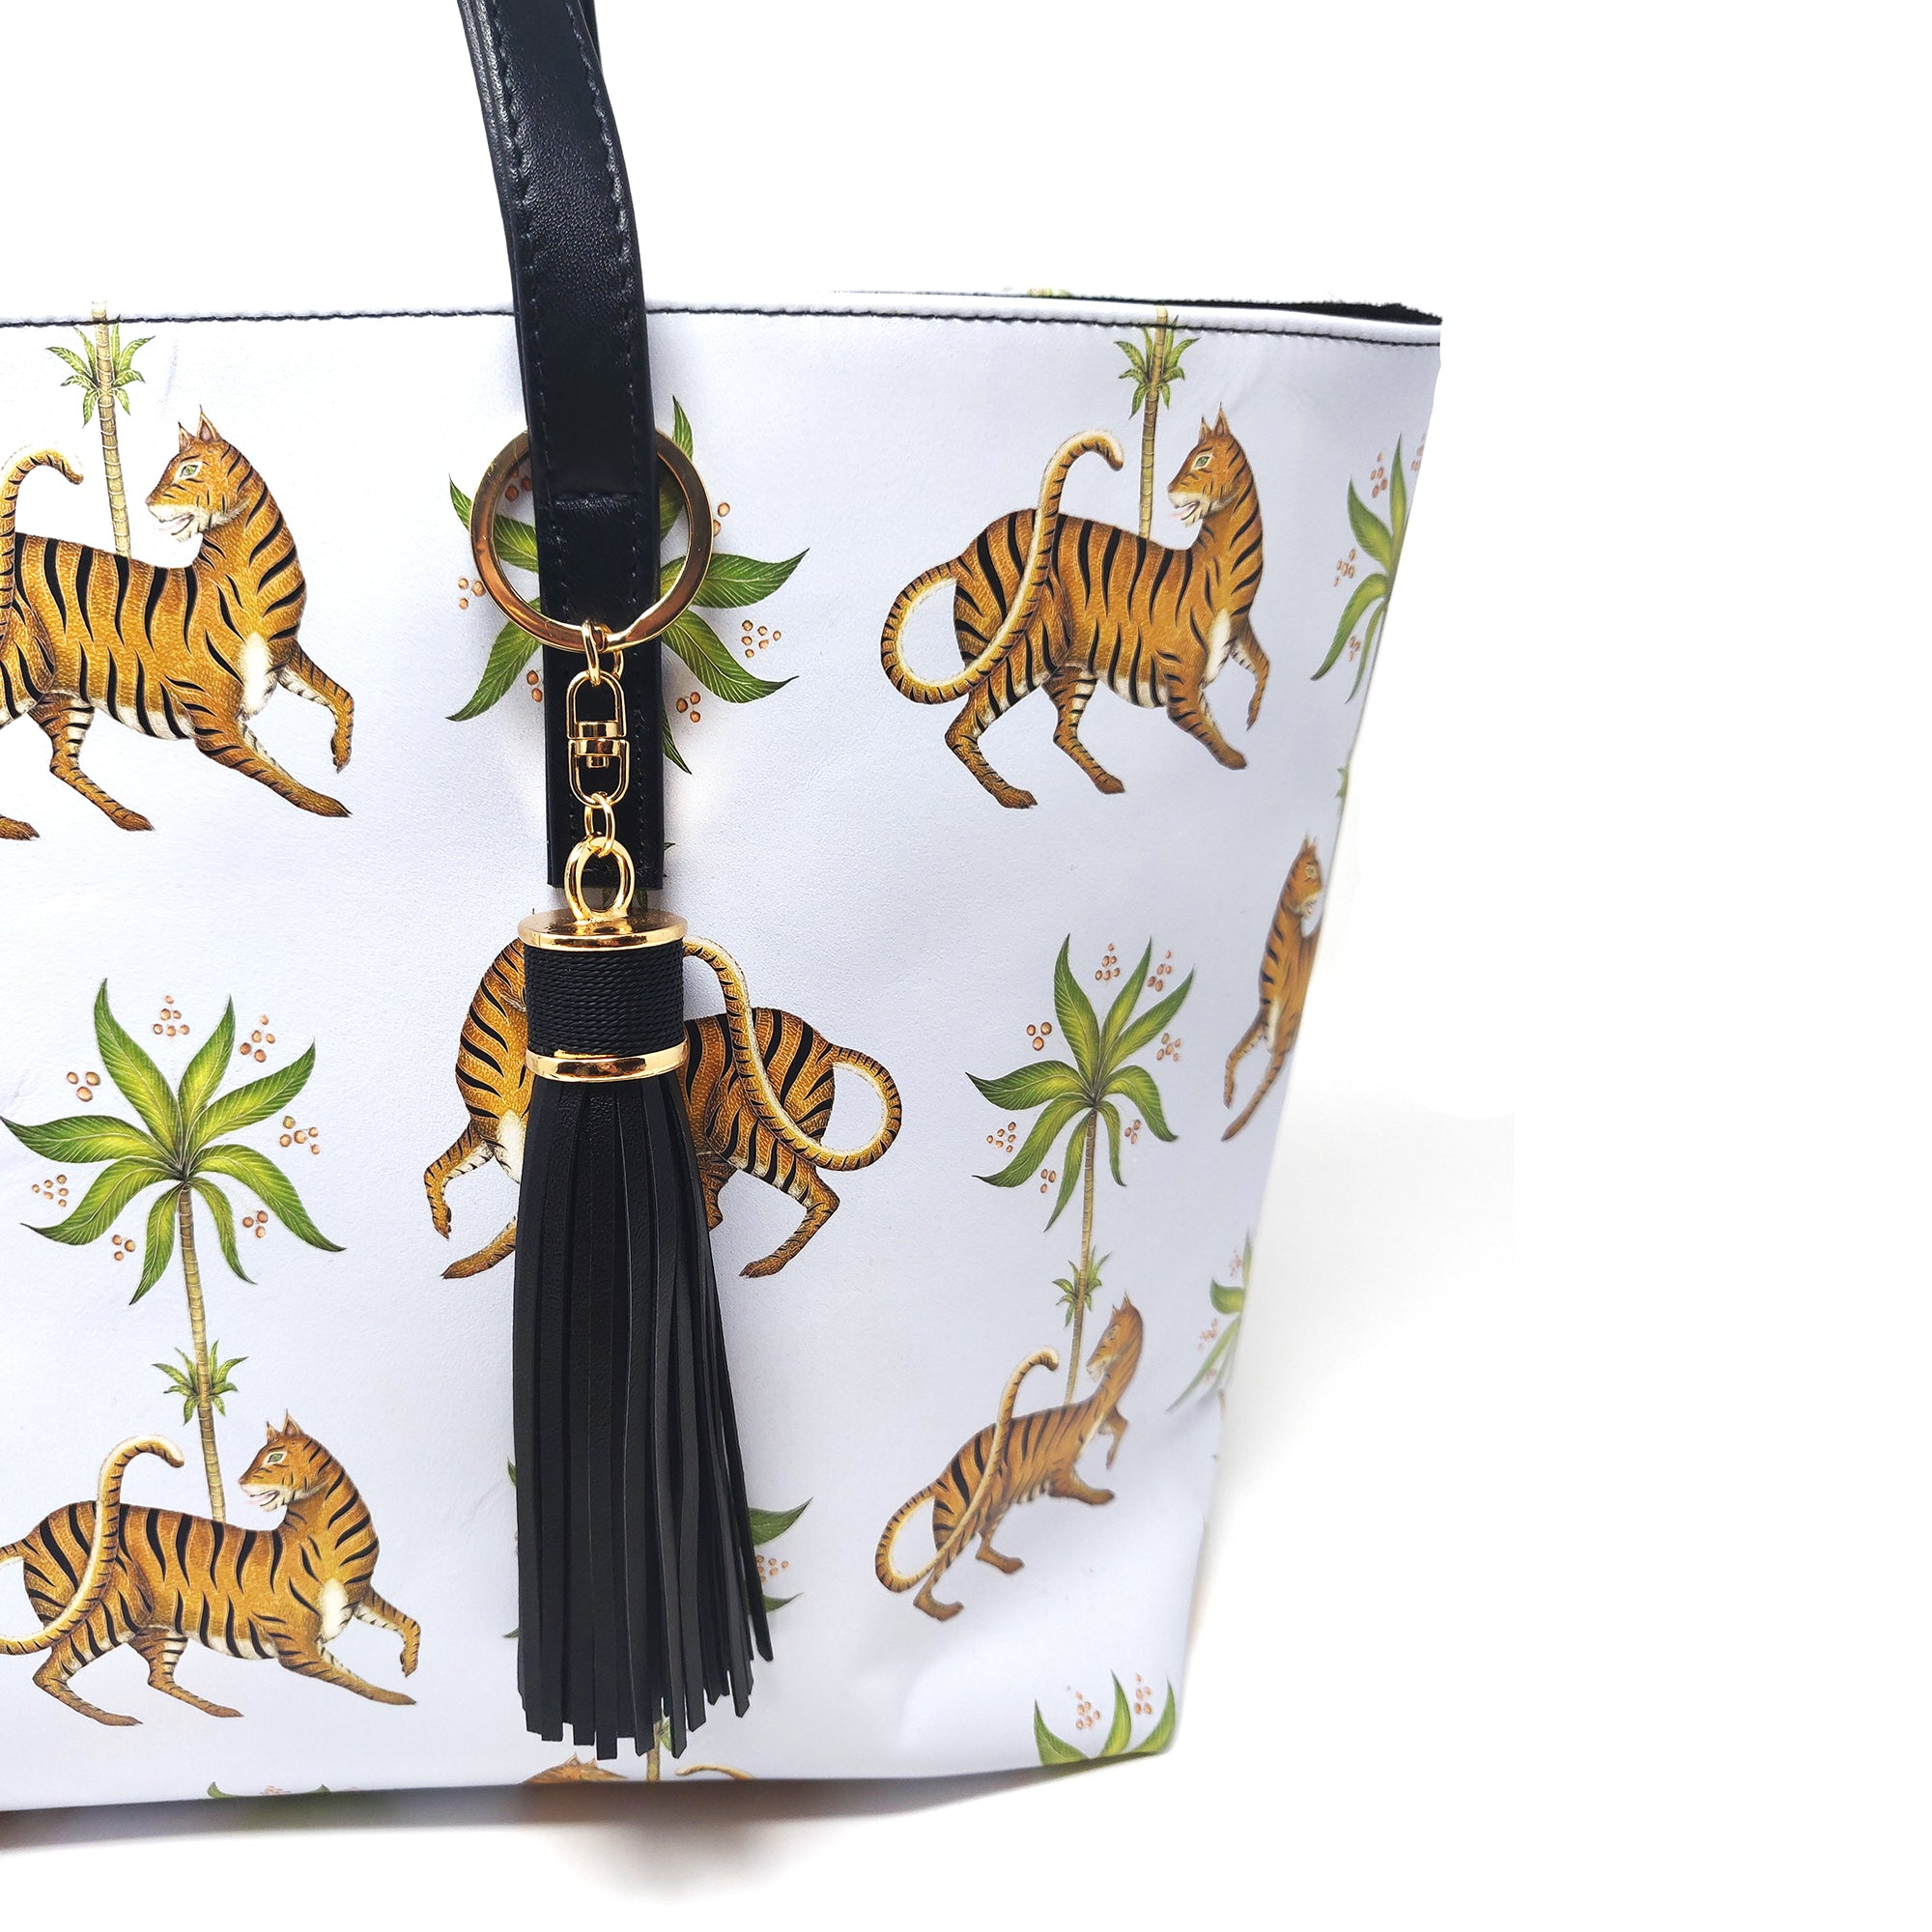 Tiger & Palm Pattern 100% Smooth Nappa Leather Handbag